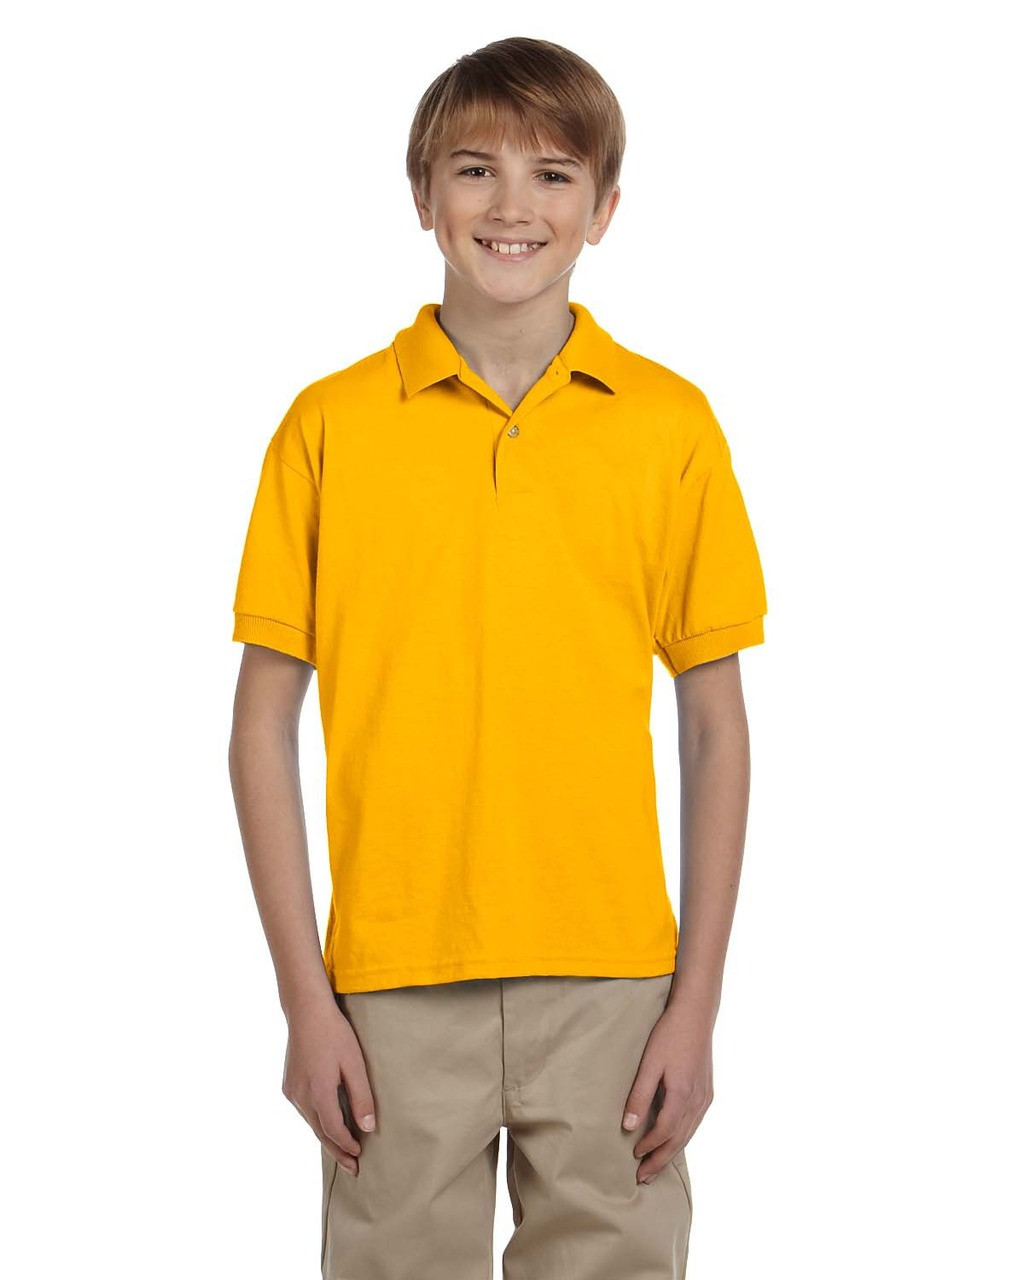 Gold - G880B Gildan DryBlend® Youth 50/50 Jersey Polo Shirt | Blankclothing.ca